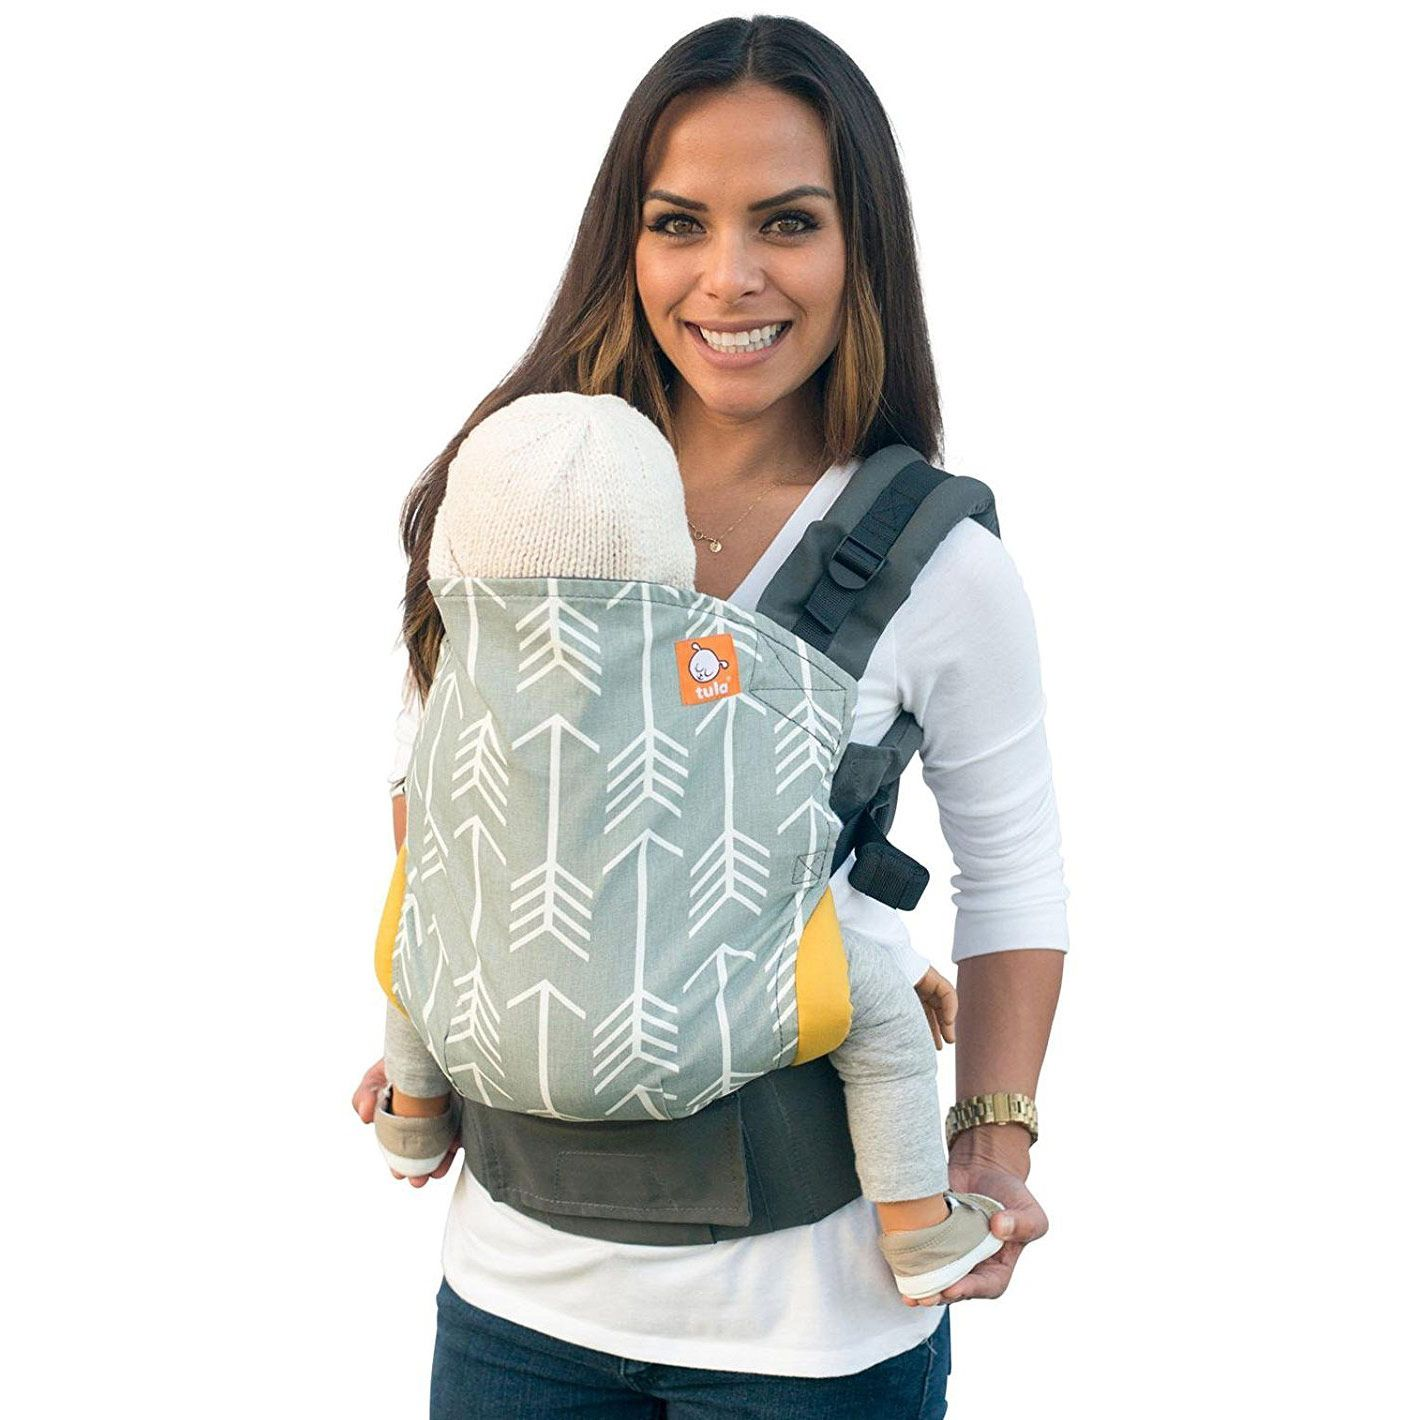 8ed691a8f71 4 Best Baby Carriers, Wraps Infants: Tula, Beco, Moby 2017